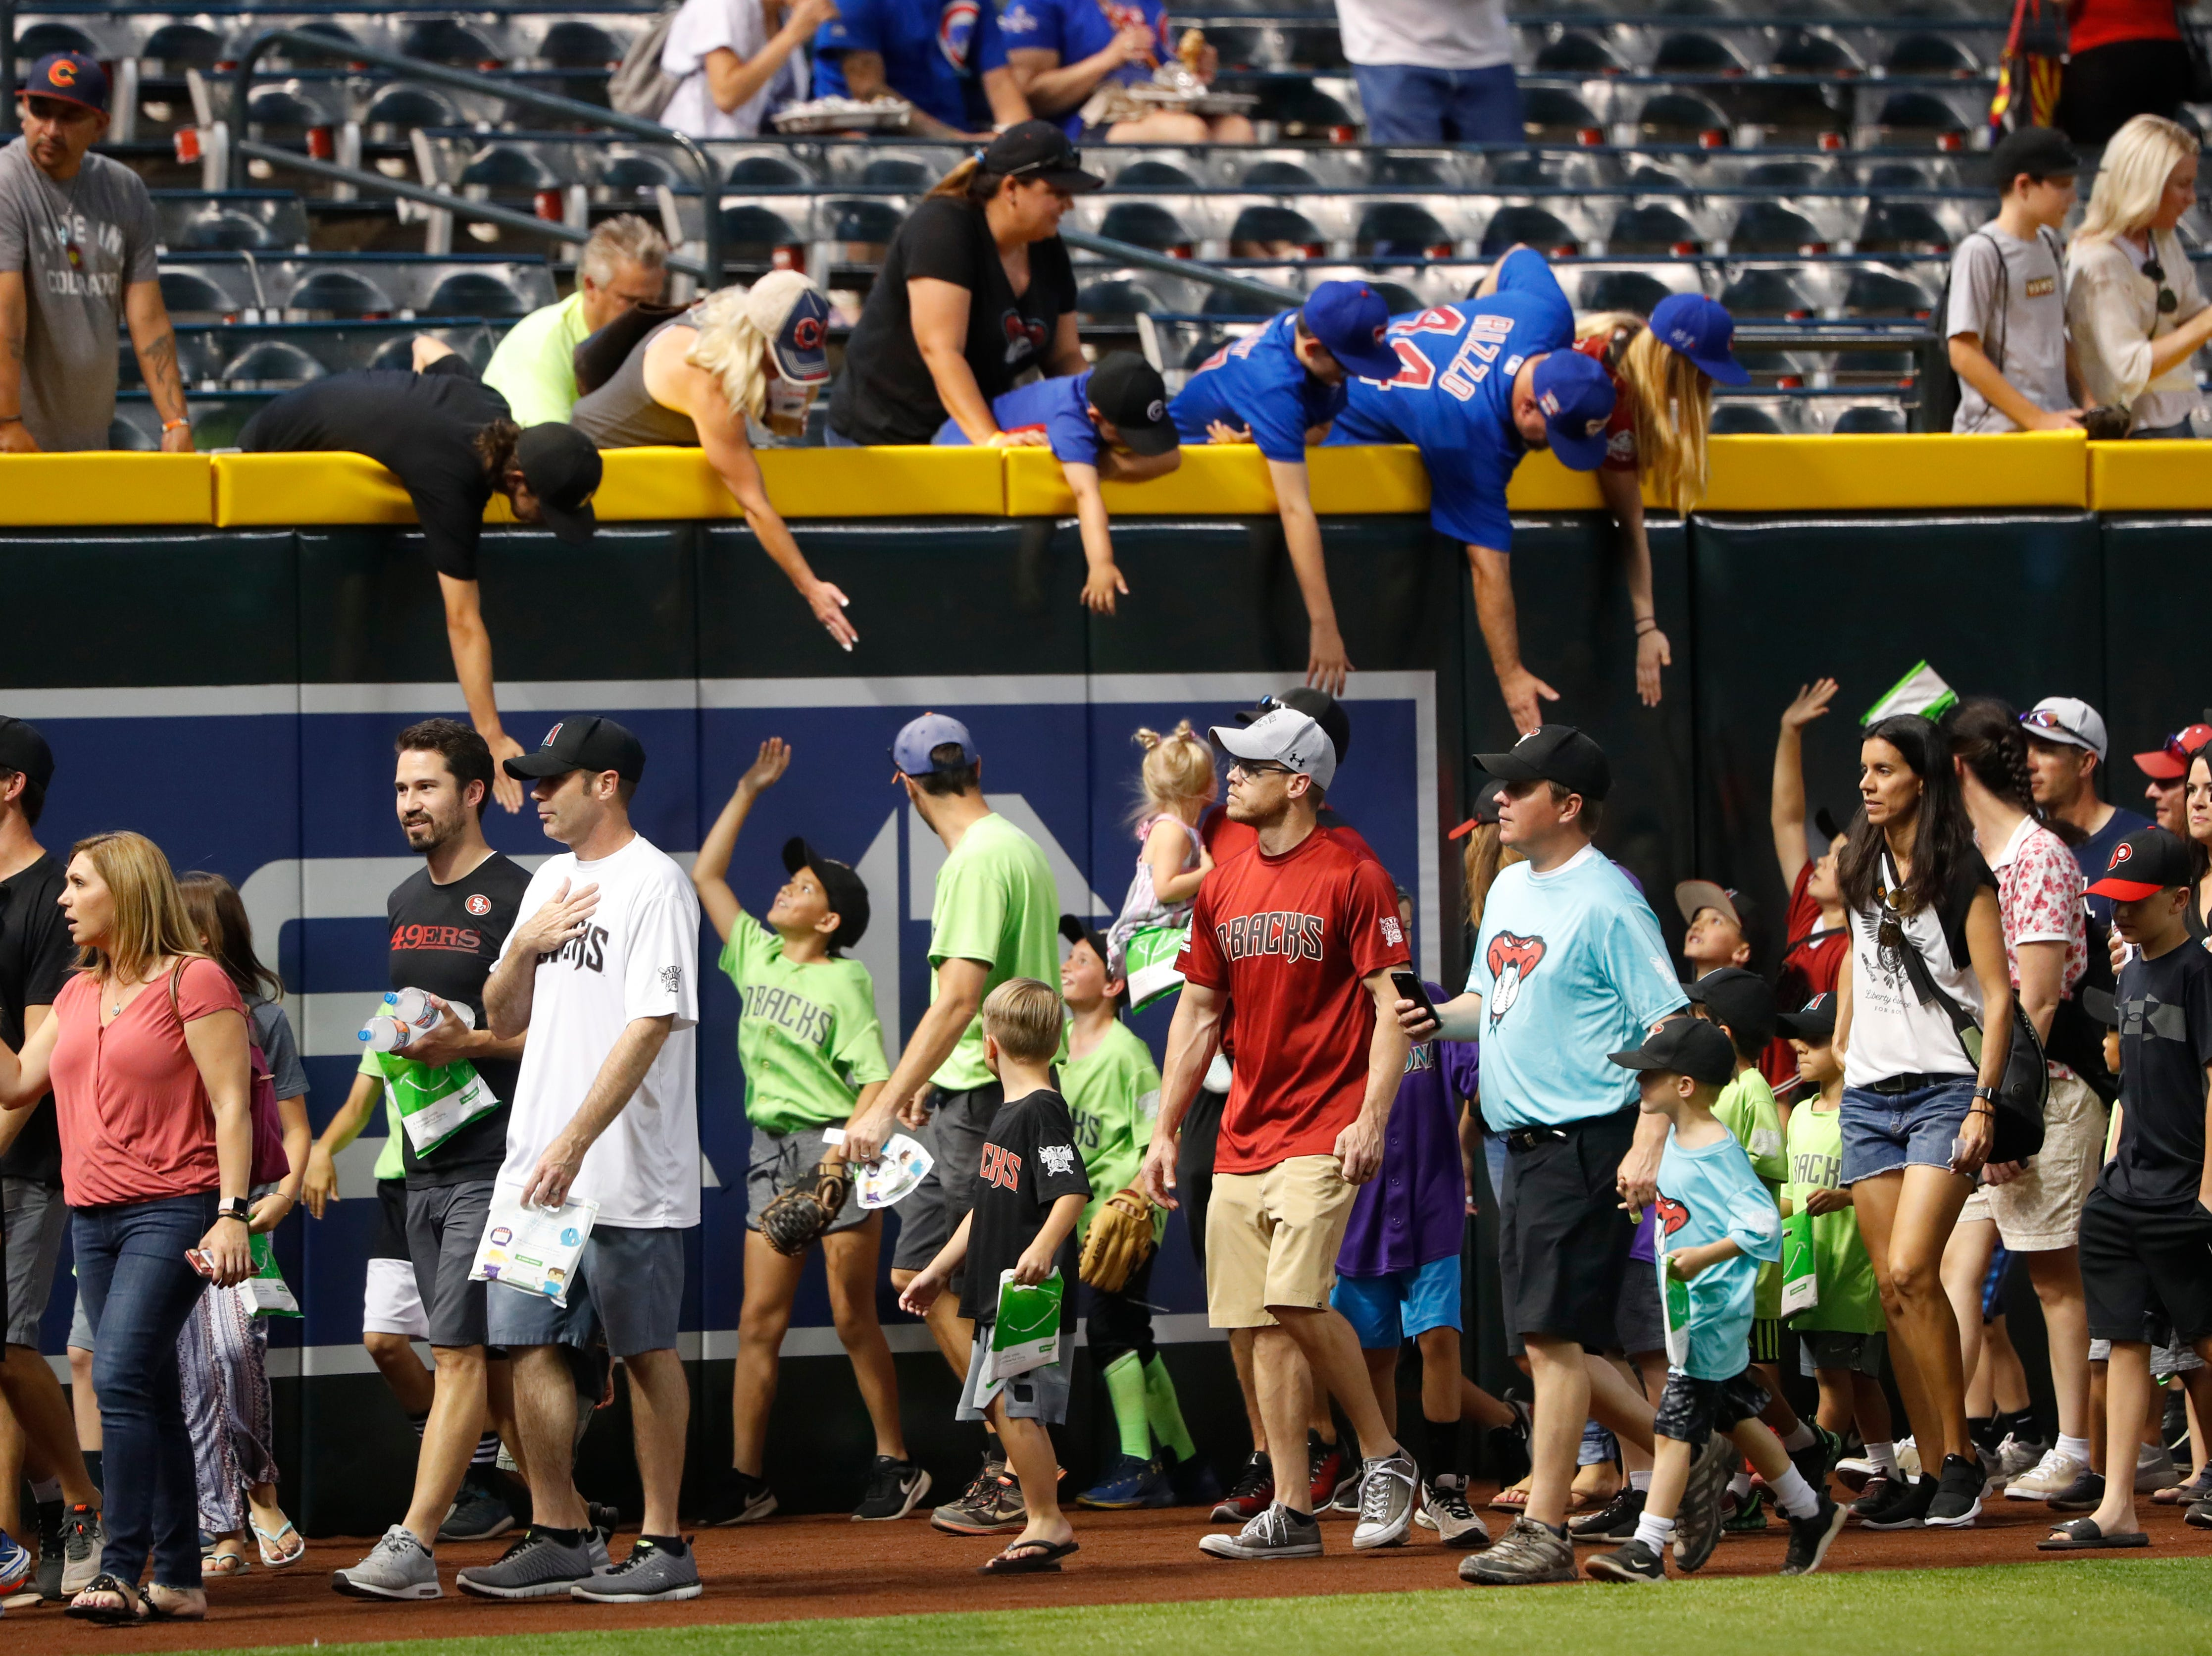 Fans make their way around the outfield dirt during the Arizona All-Stars Parade before a Cubs vs. Diamondbacks game at Chase Field in Phoenix, Ariz. on April 26, 2019.